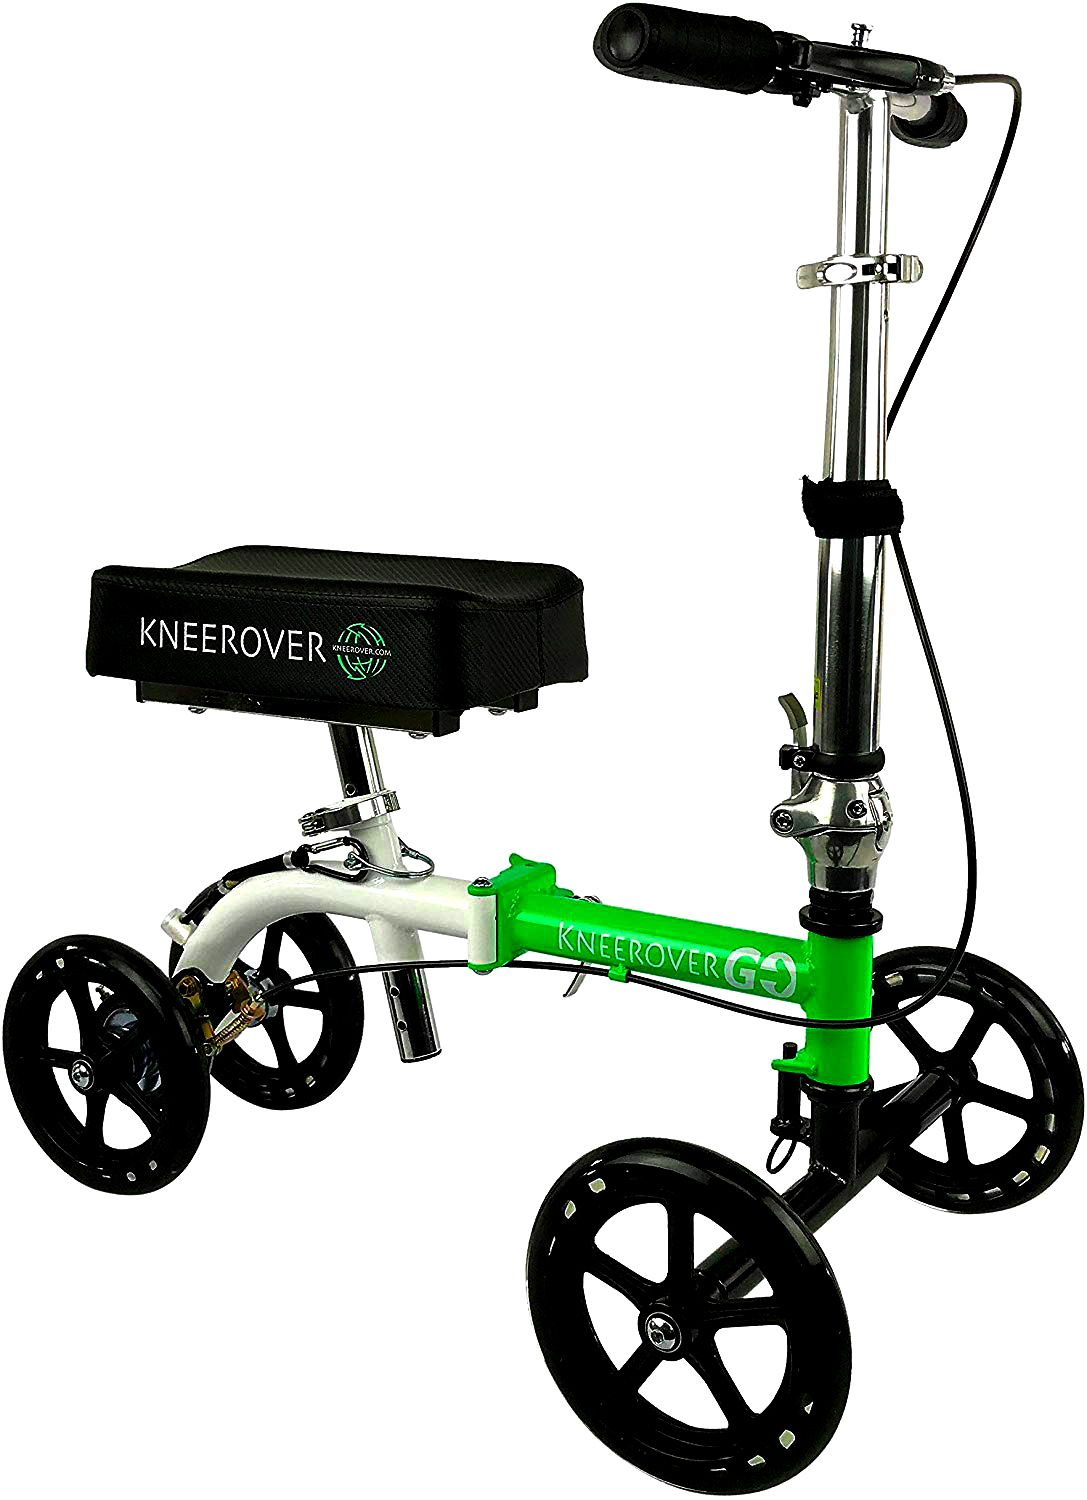 The Top 10 Best knee Scooter Reviews 2020 Buying Guide